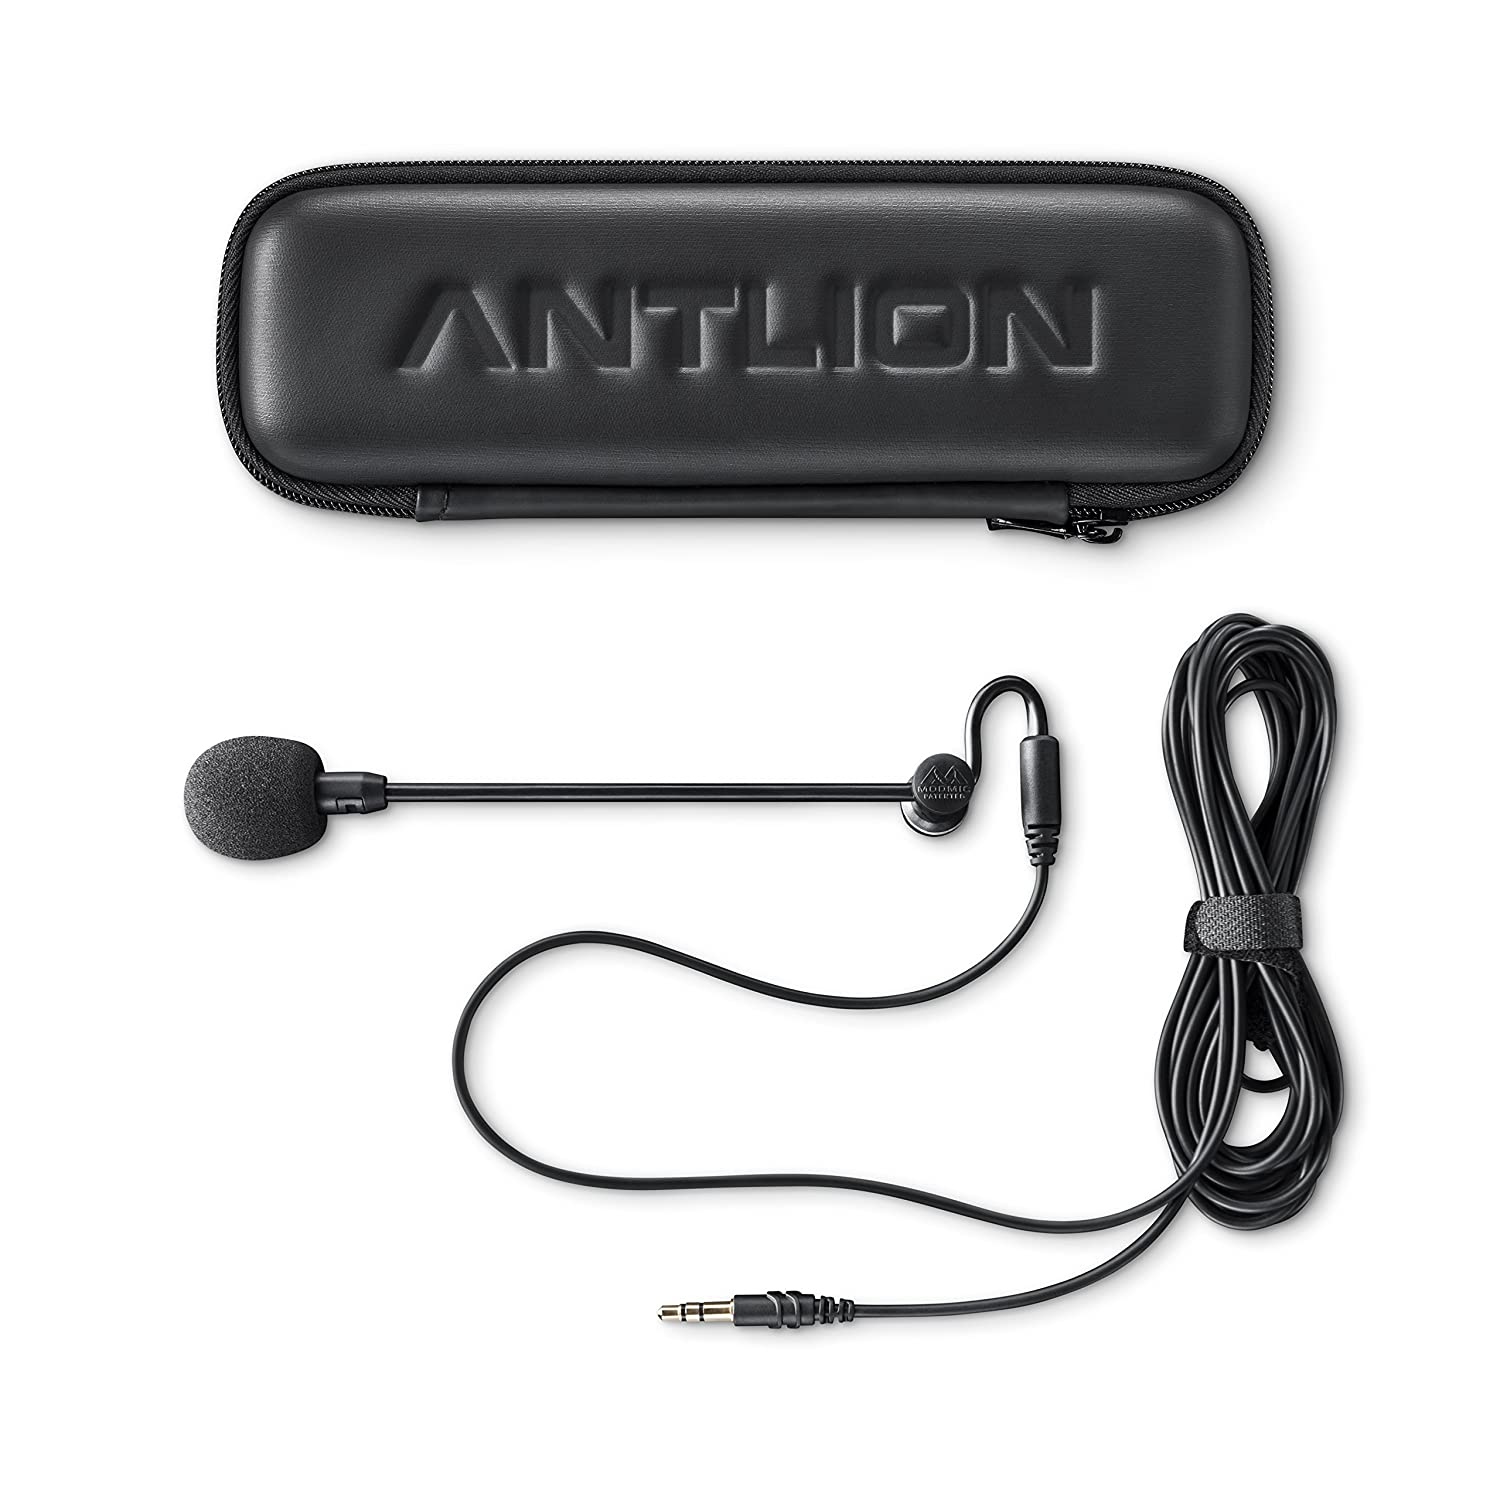 Antlion Audio ModMic Attachable Boom Microphone - Noise Cancelling WITHOUT Mute Switch MODMICWOMUTE